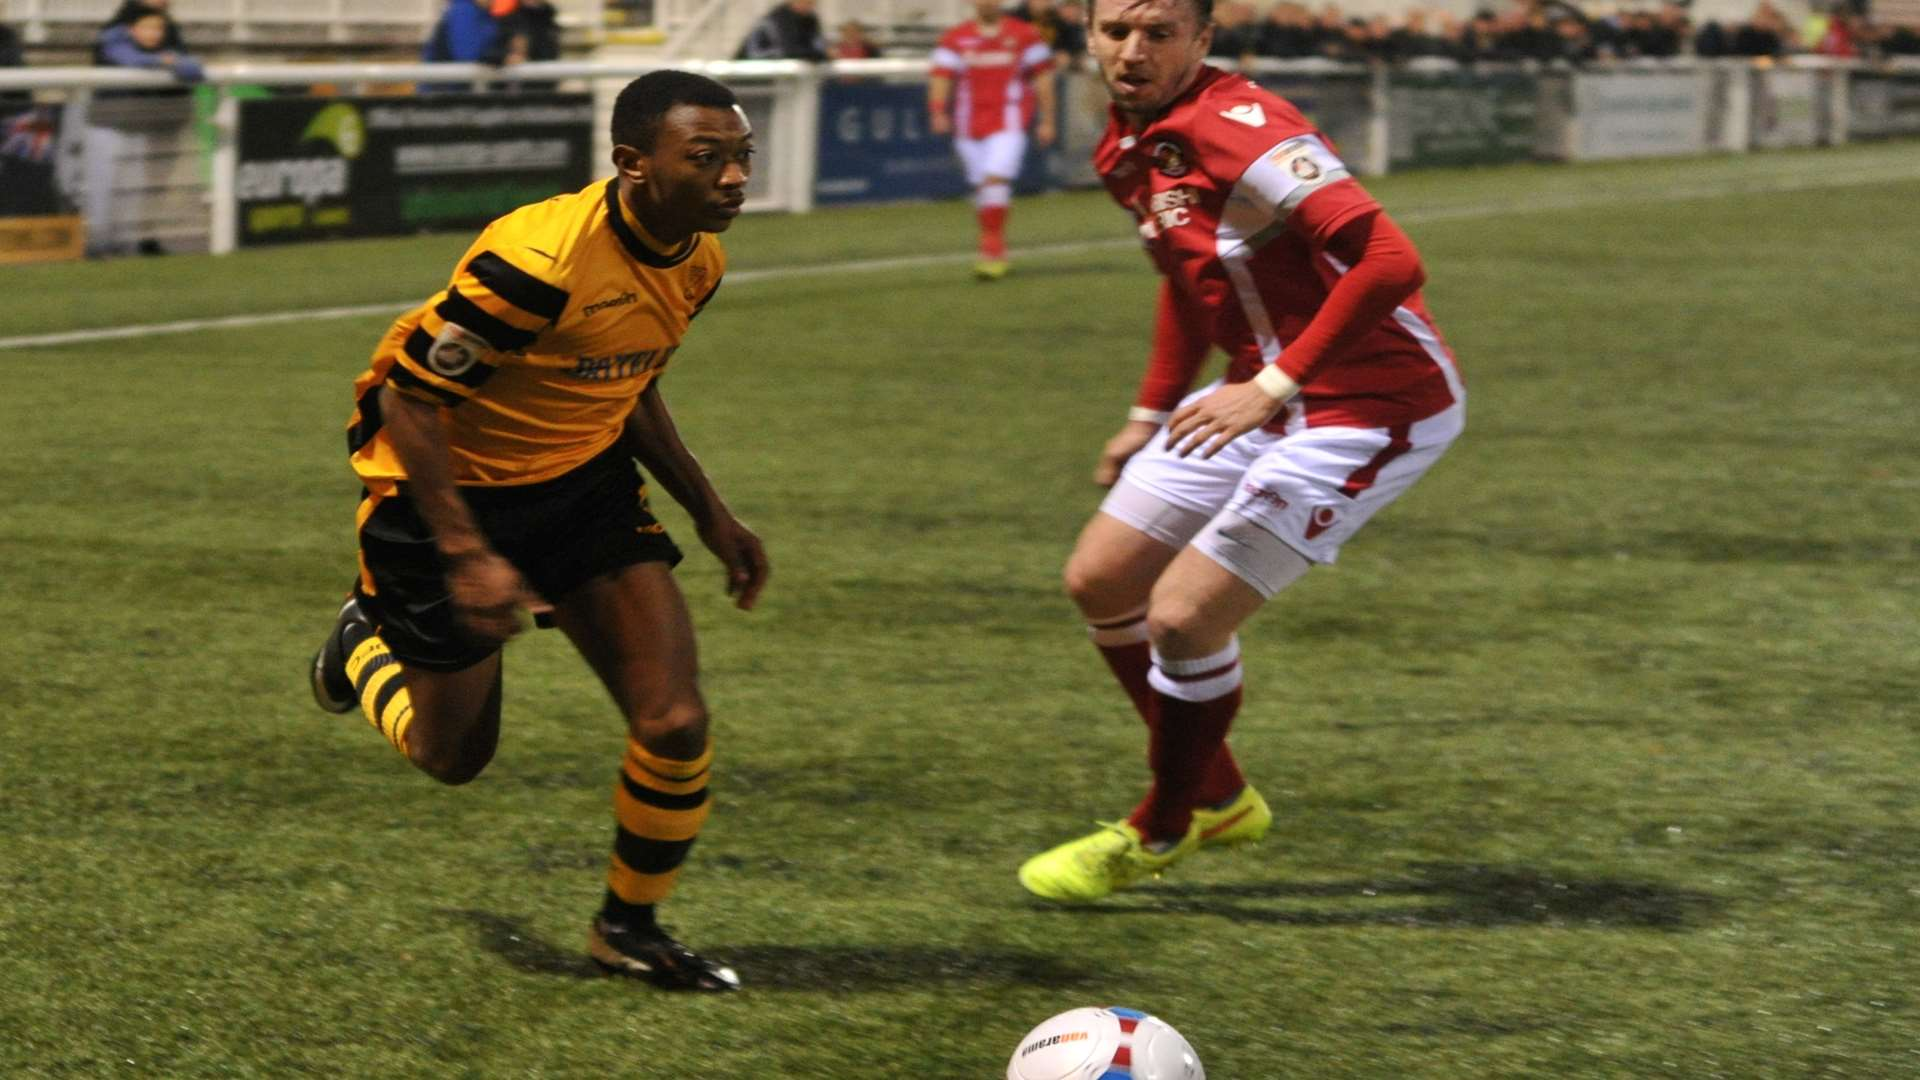 Charles Banya shows attacking intent at against Ebbsfleet in the Kent Senior Cup Picture: Steve Terrell